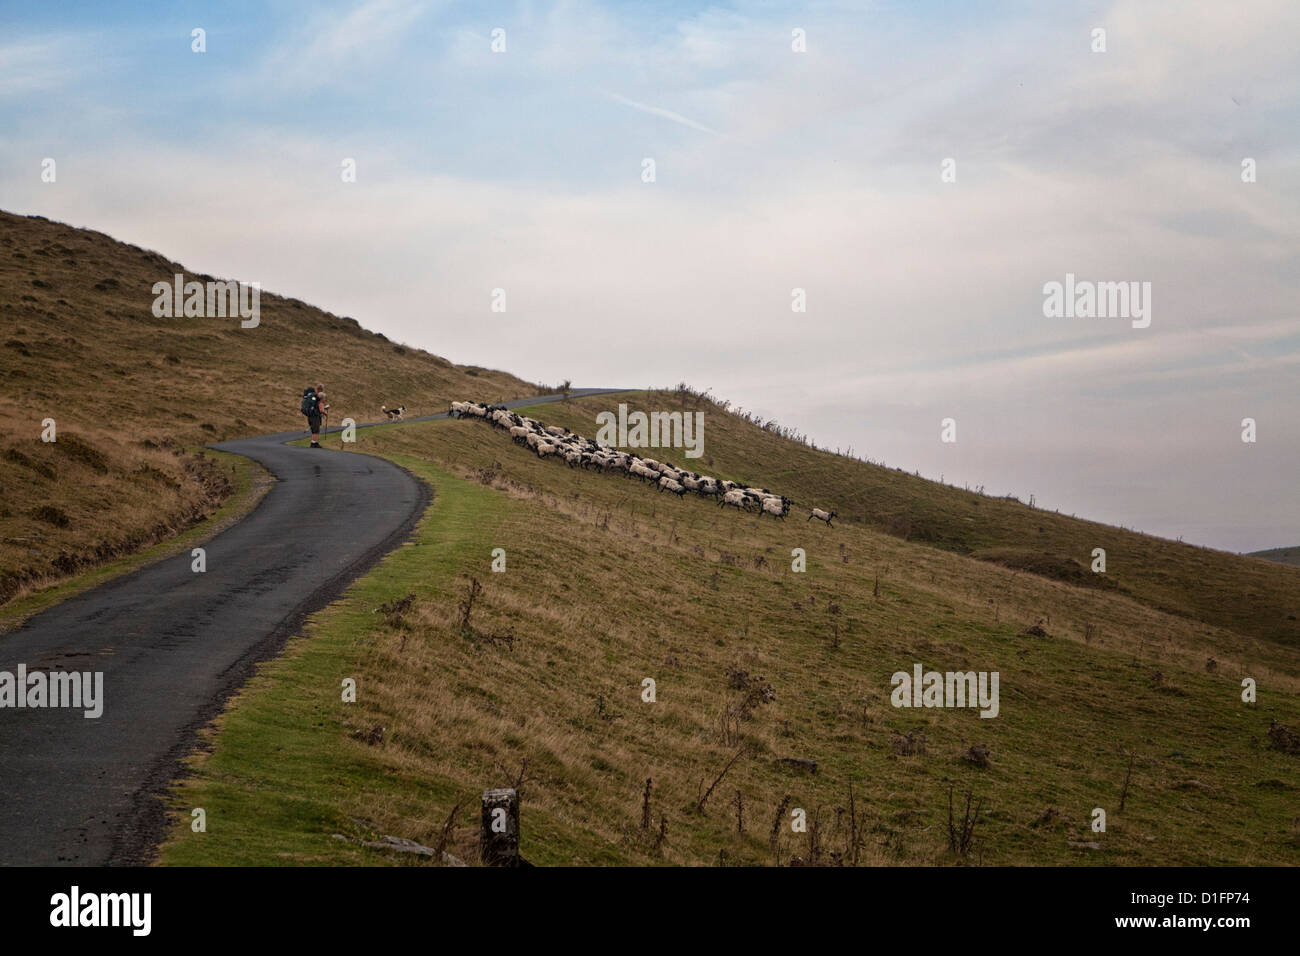 working sheep dog, herding sheep across the Camino path, near Orisson. in the Pyrenees Mountains of South France. Stock Photo